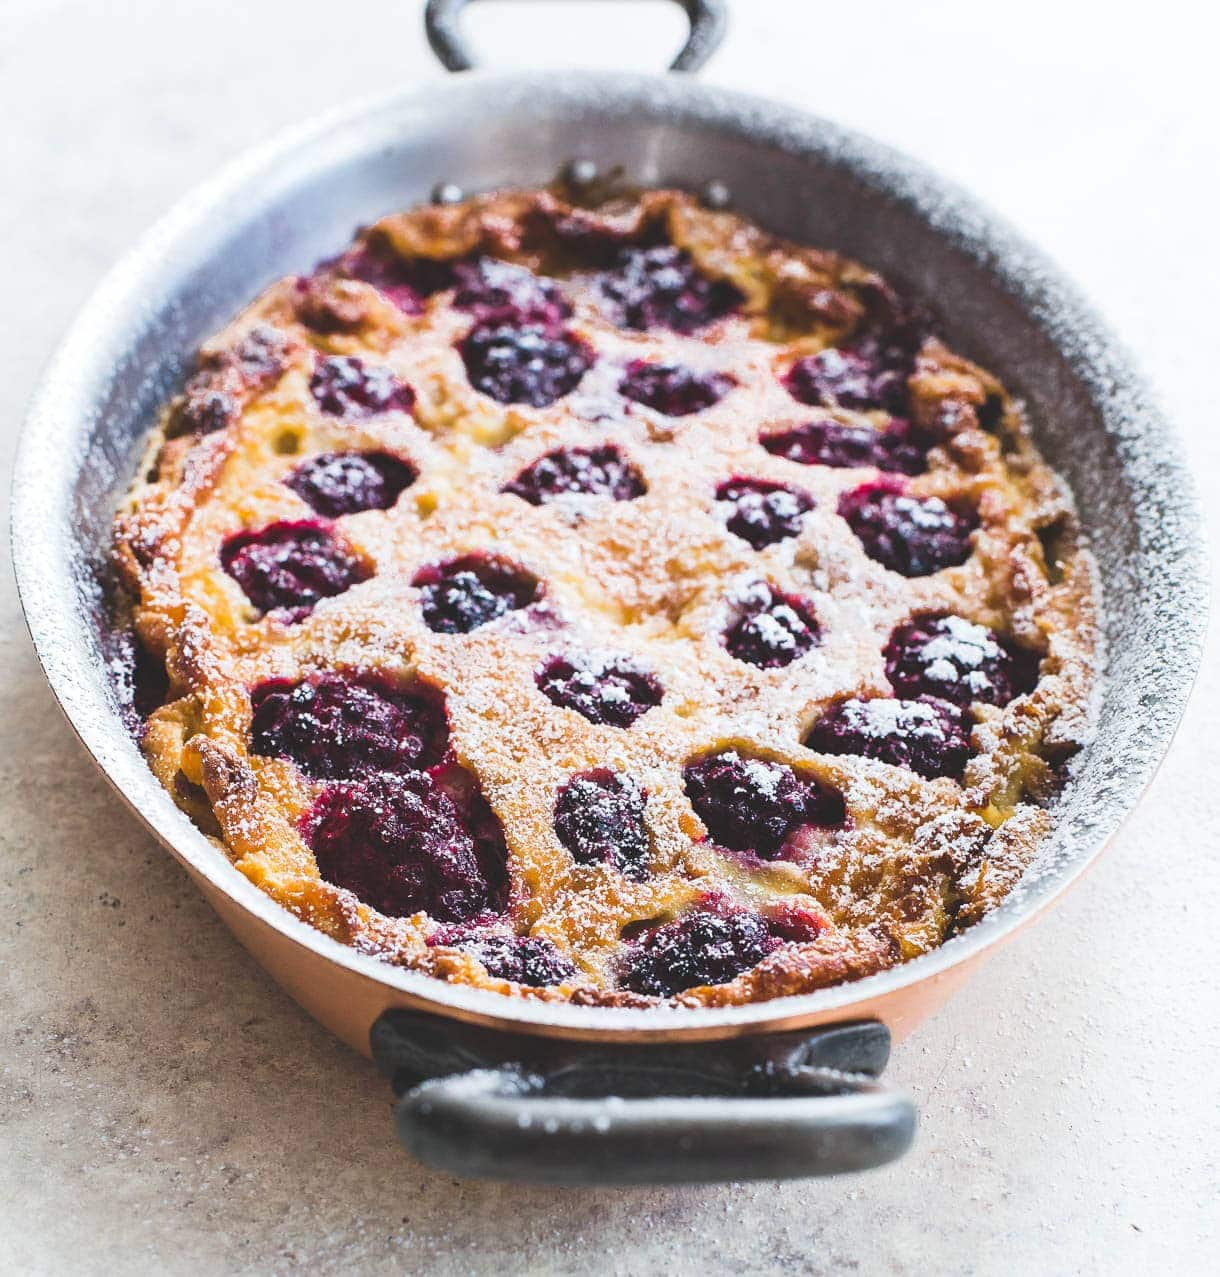 Blackberry Baked Pudding